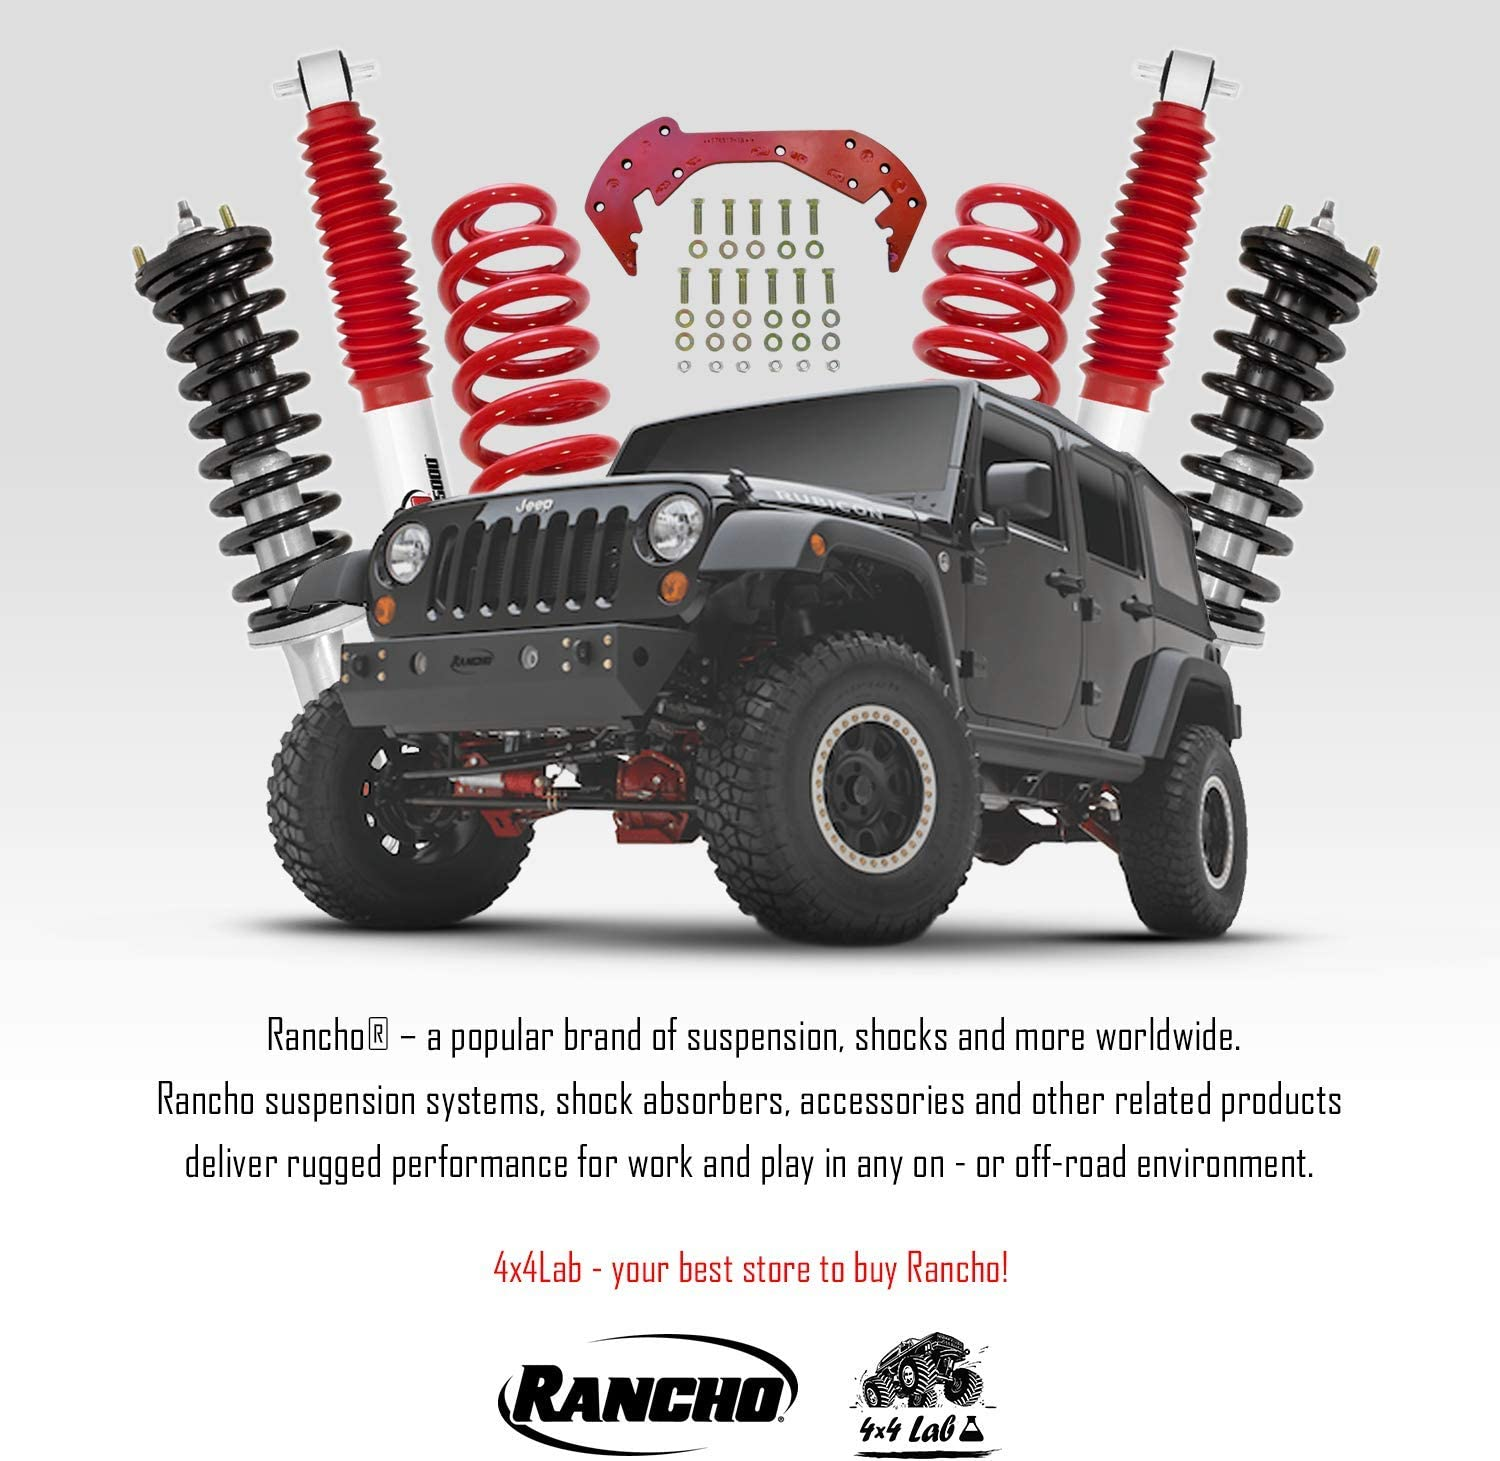 Kit of 4 Rancho RS5000X Front/&Rear 0 inch lift Lift Shocks for Ford F-150 Lightning 2WD 1993-1995